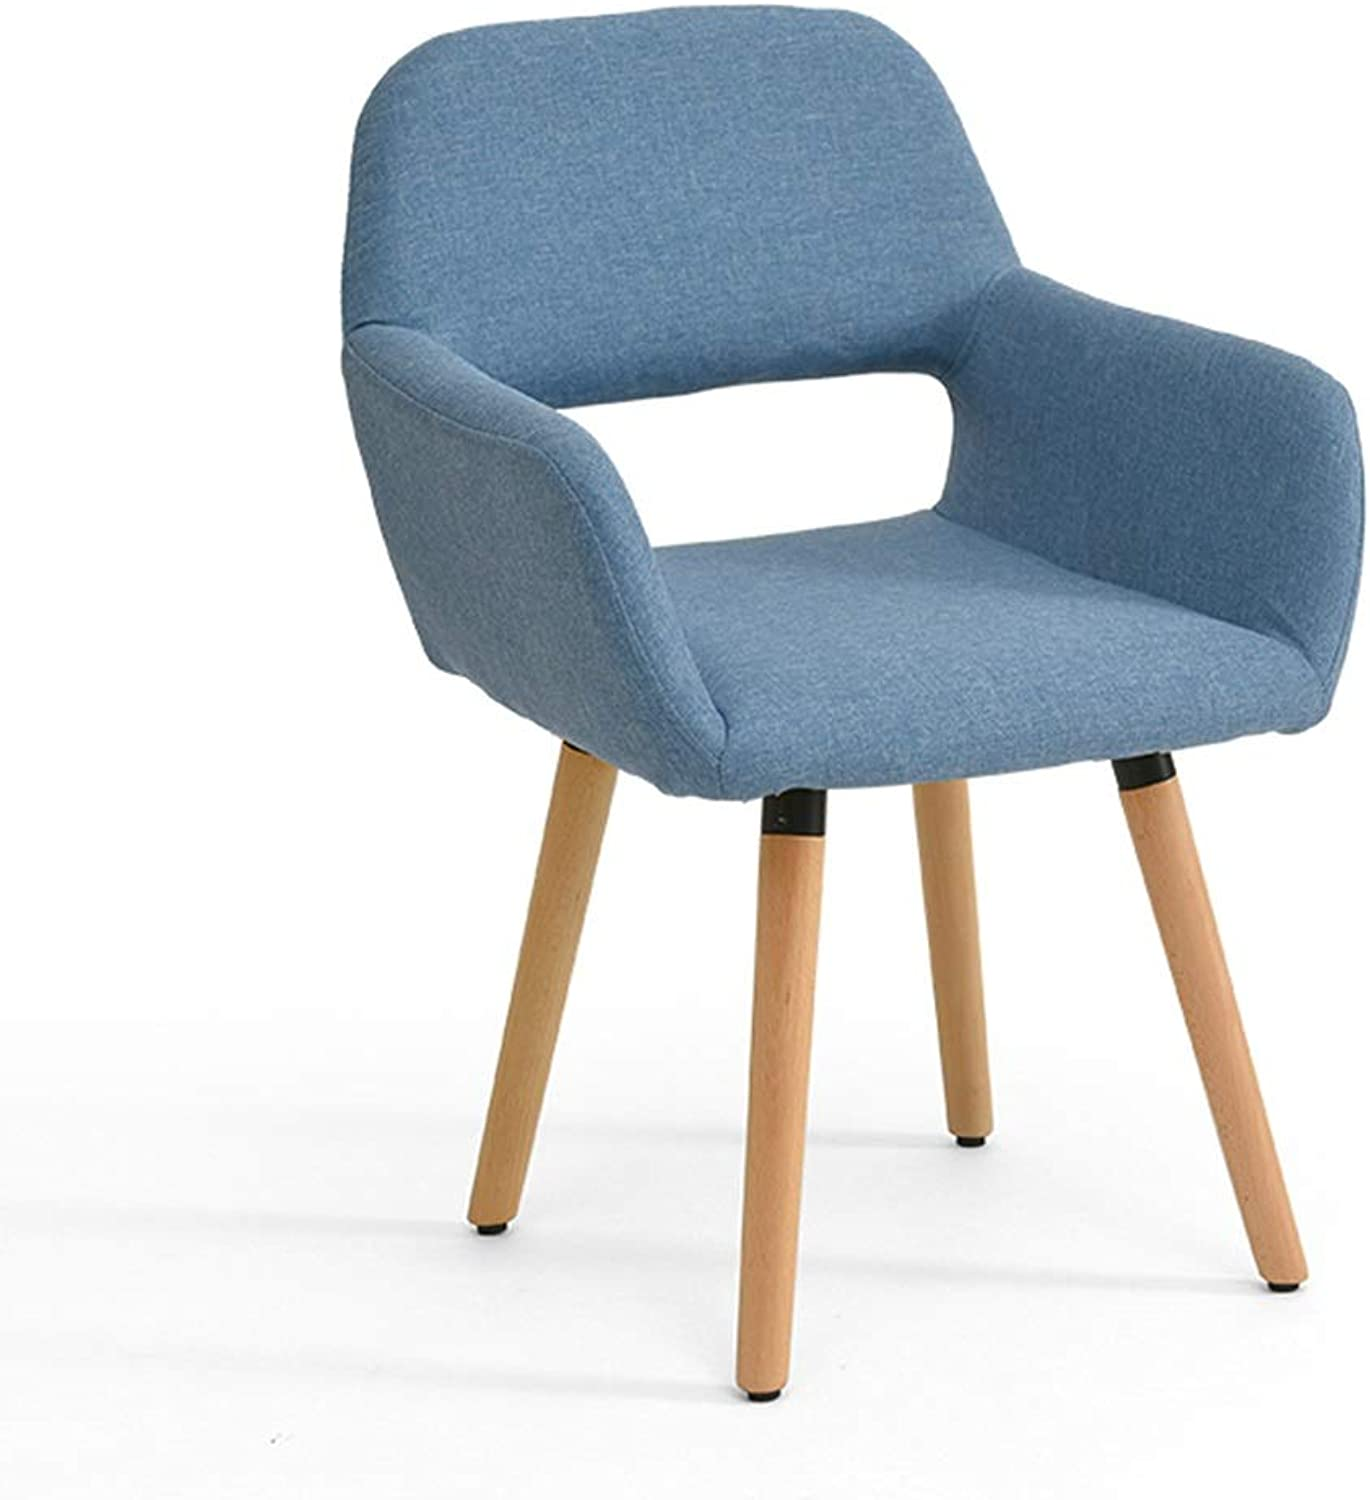 ZZ Chair Cotton and Linen Solid Wood Chair, Open Back Armchair, Home Dining Chair Desk Chair, Three colors Optional (color   Lake bluee)